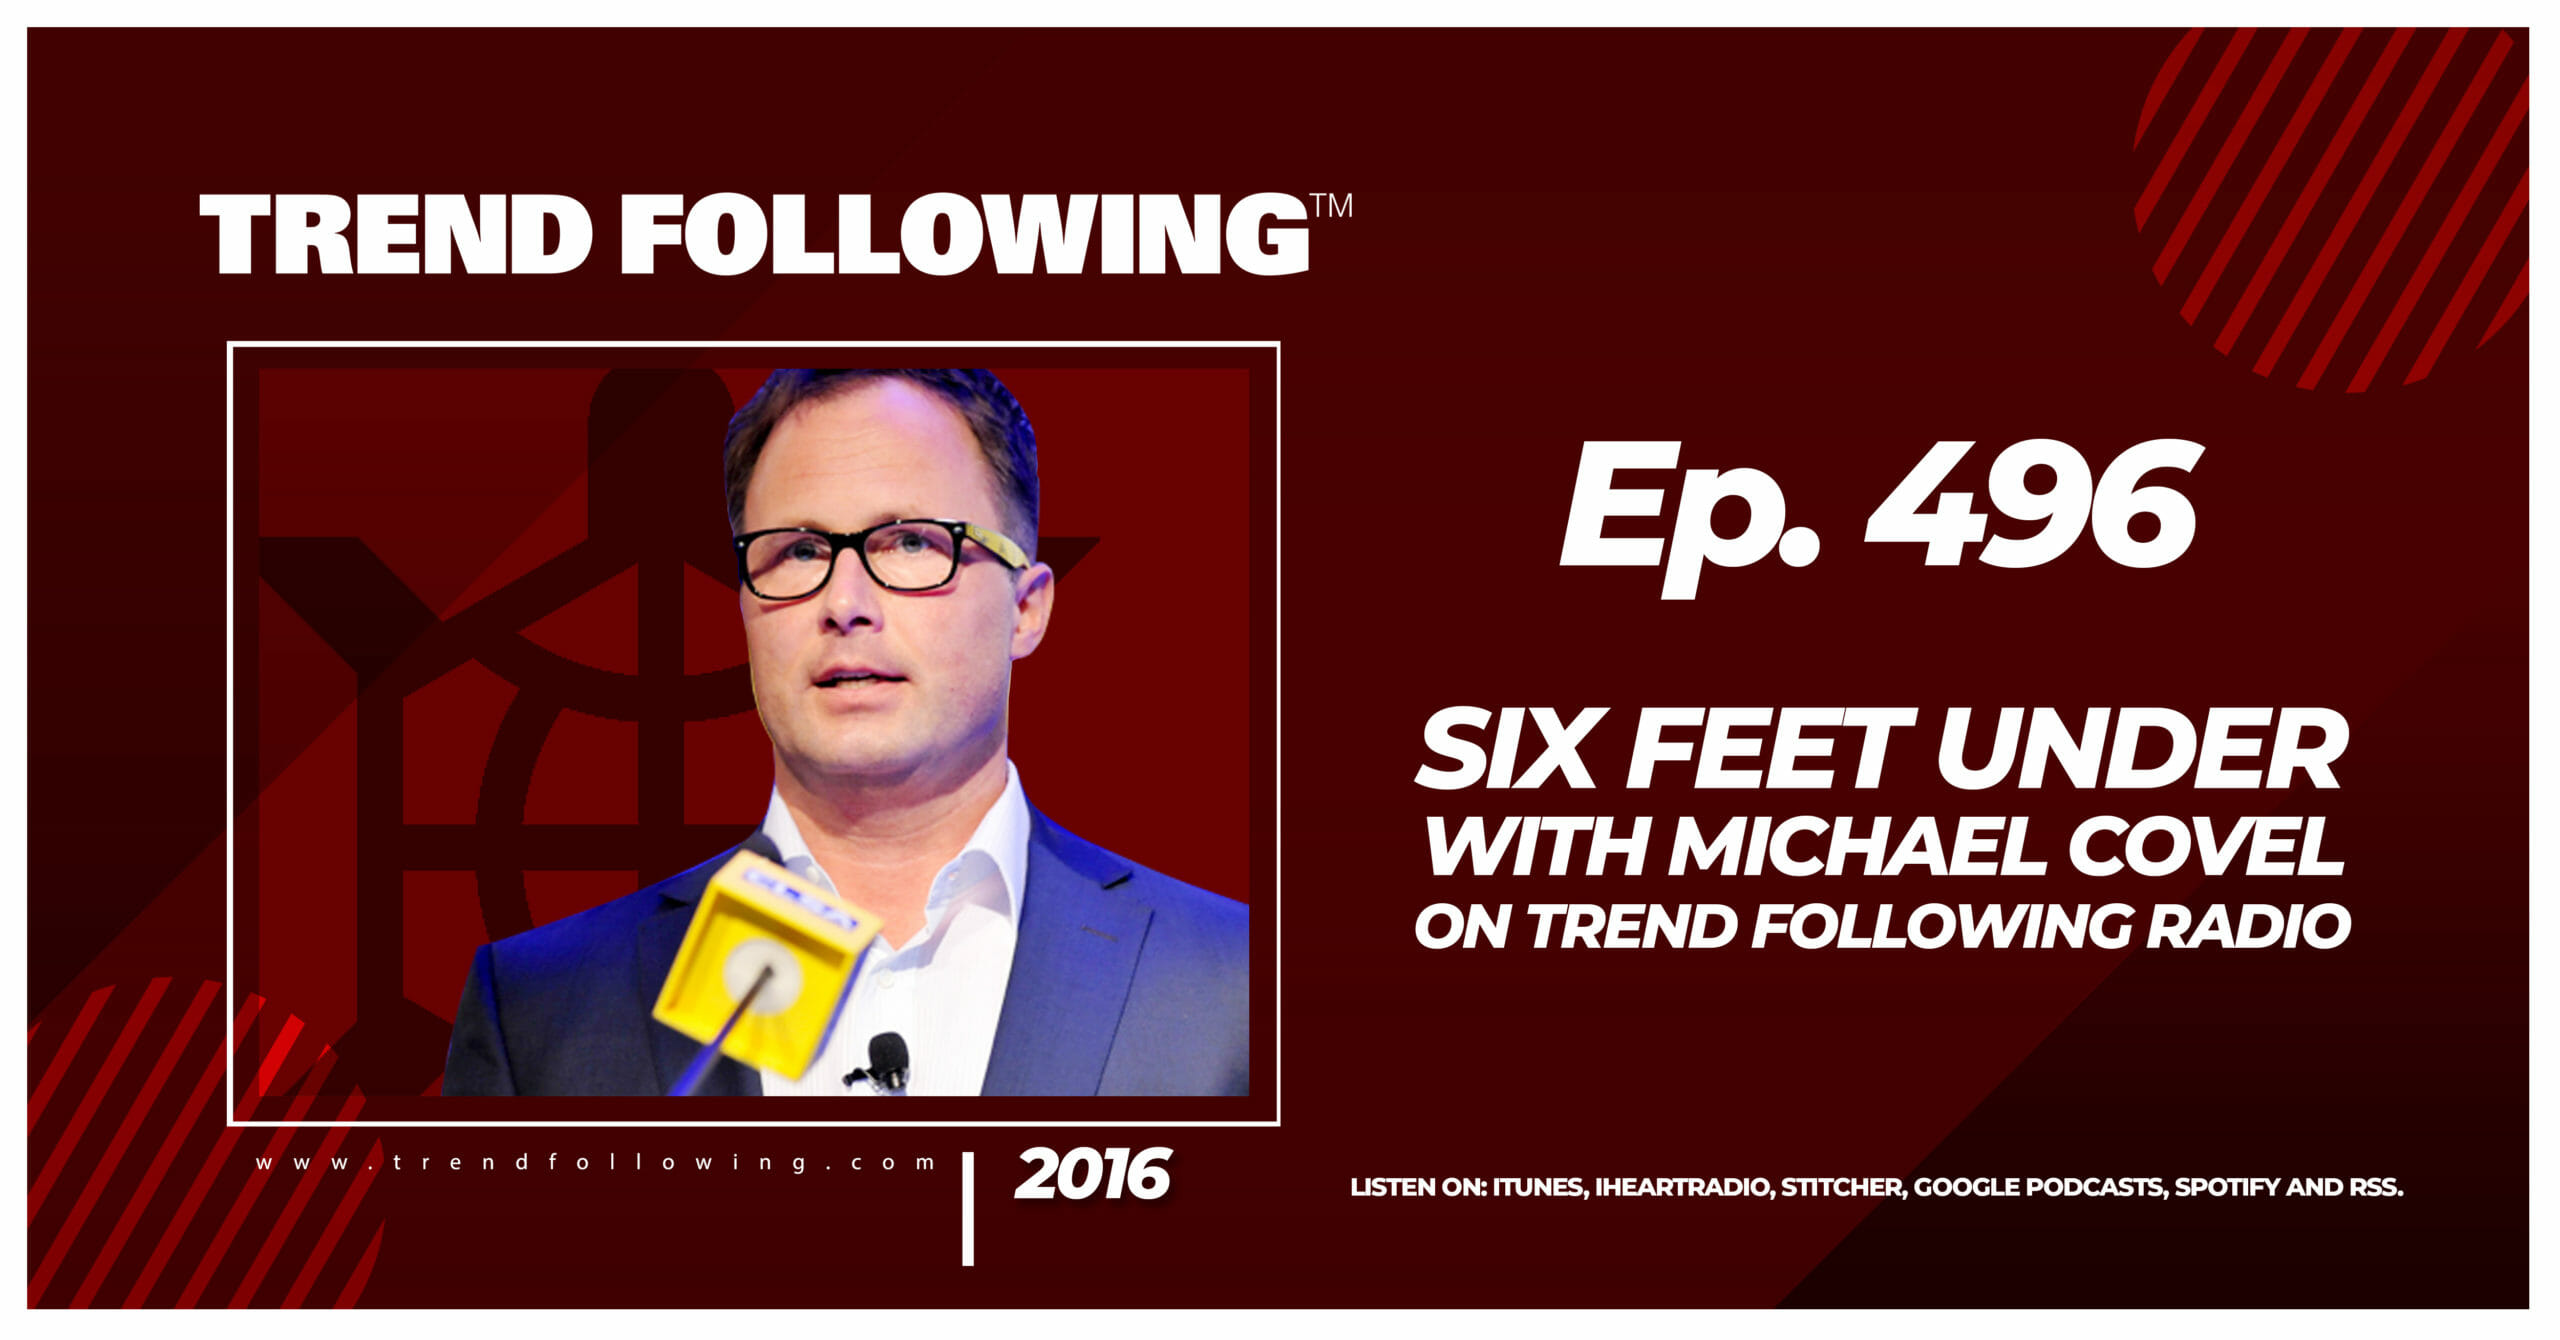 Six Feet Under with Michael Covel on Trend Following Radio